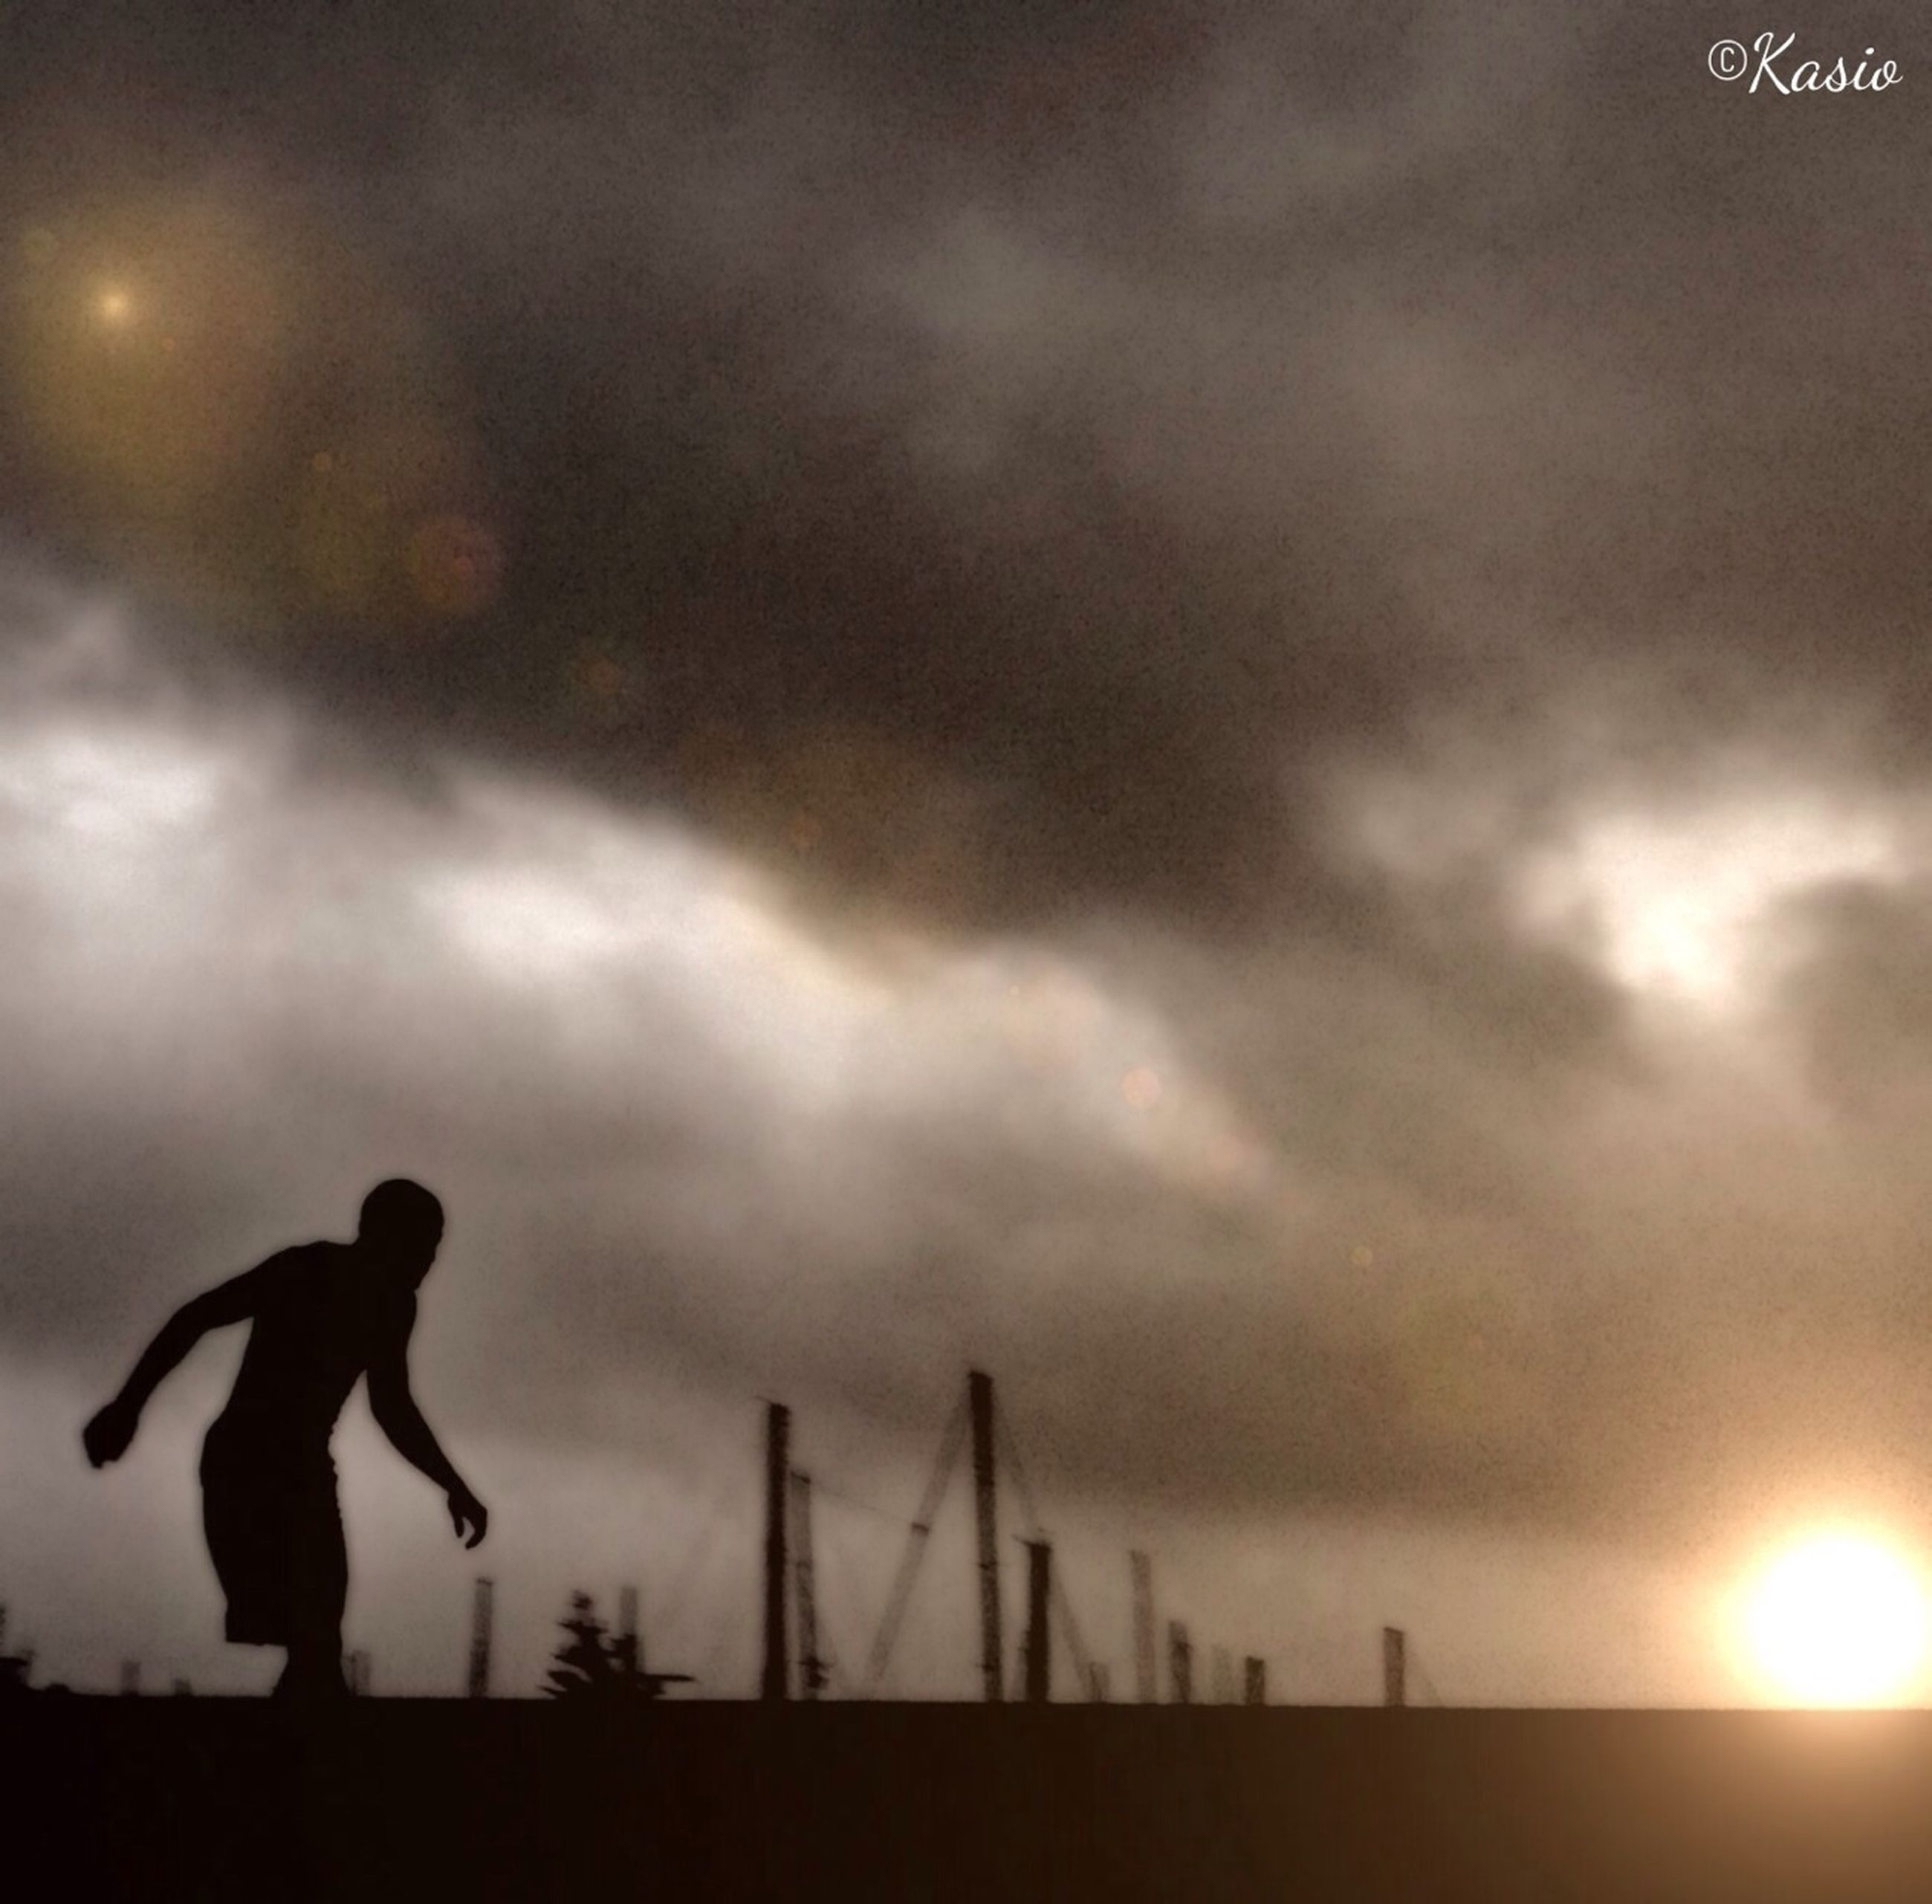 silhouette, sky, low angle view, cloud - sky, bird, cloudy, animal themes, flying, sunset, animals in the wild, one person, wildlife, dusk, cloud, one animal, weather, overcast, nature, mid-air, outdoors